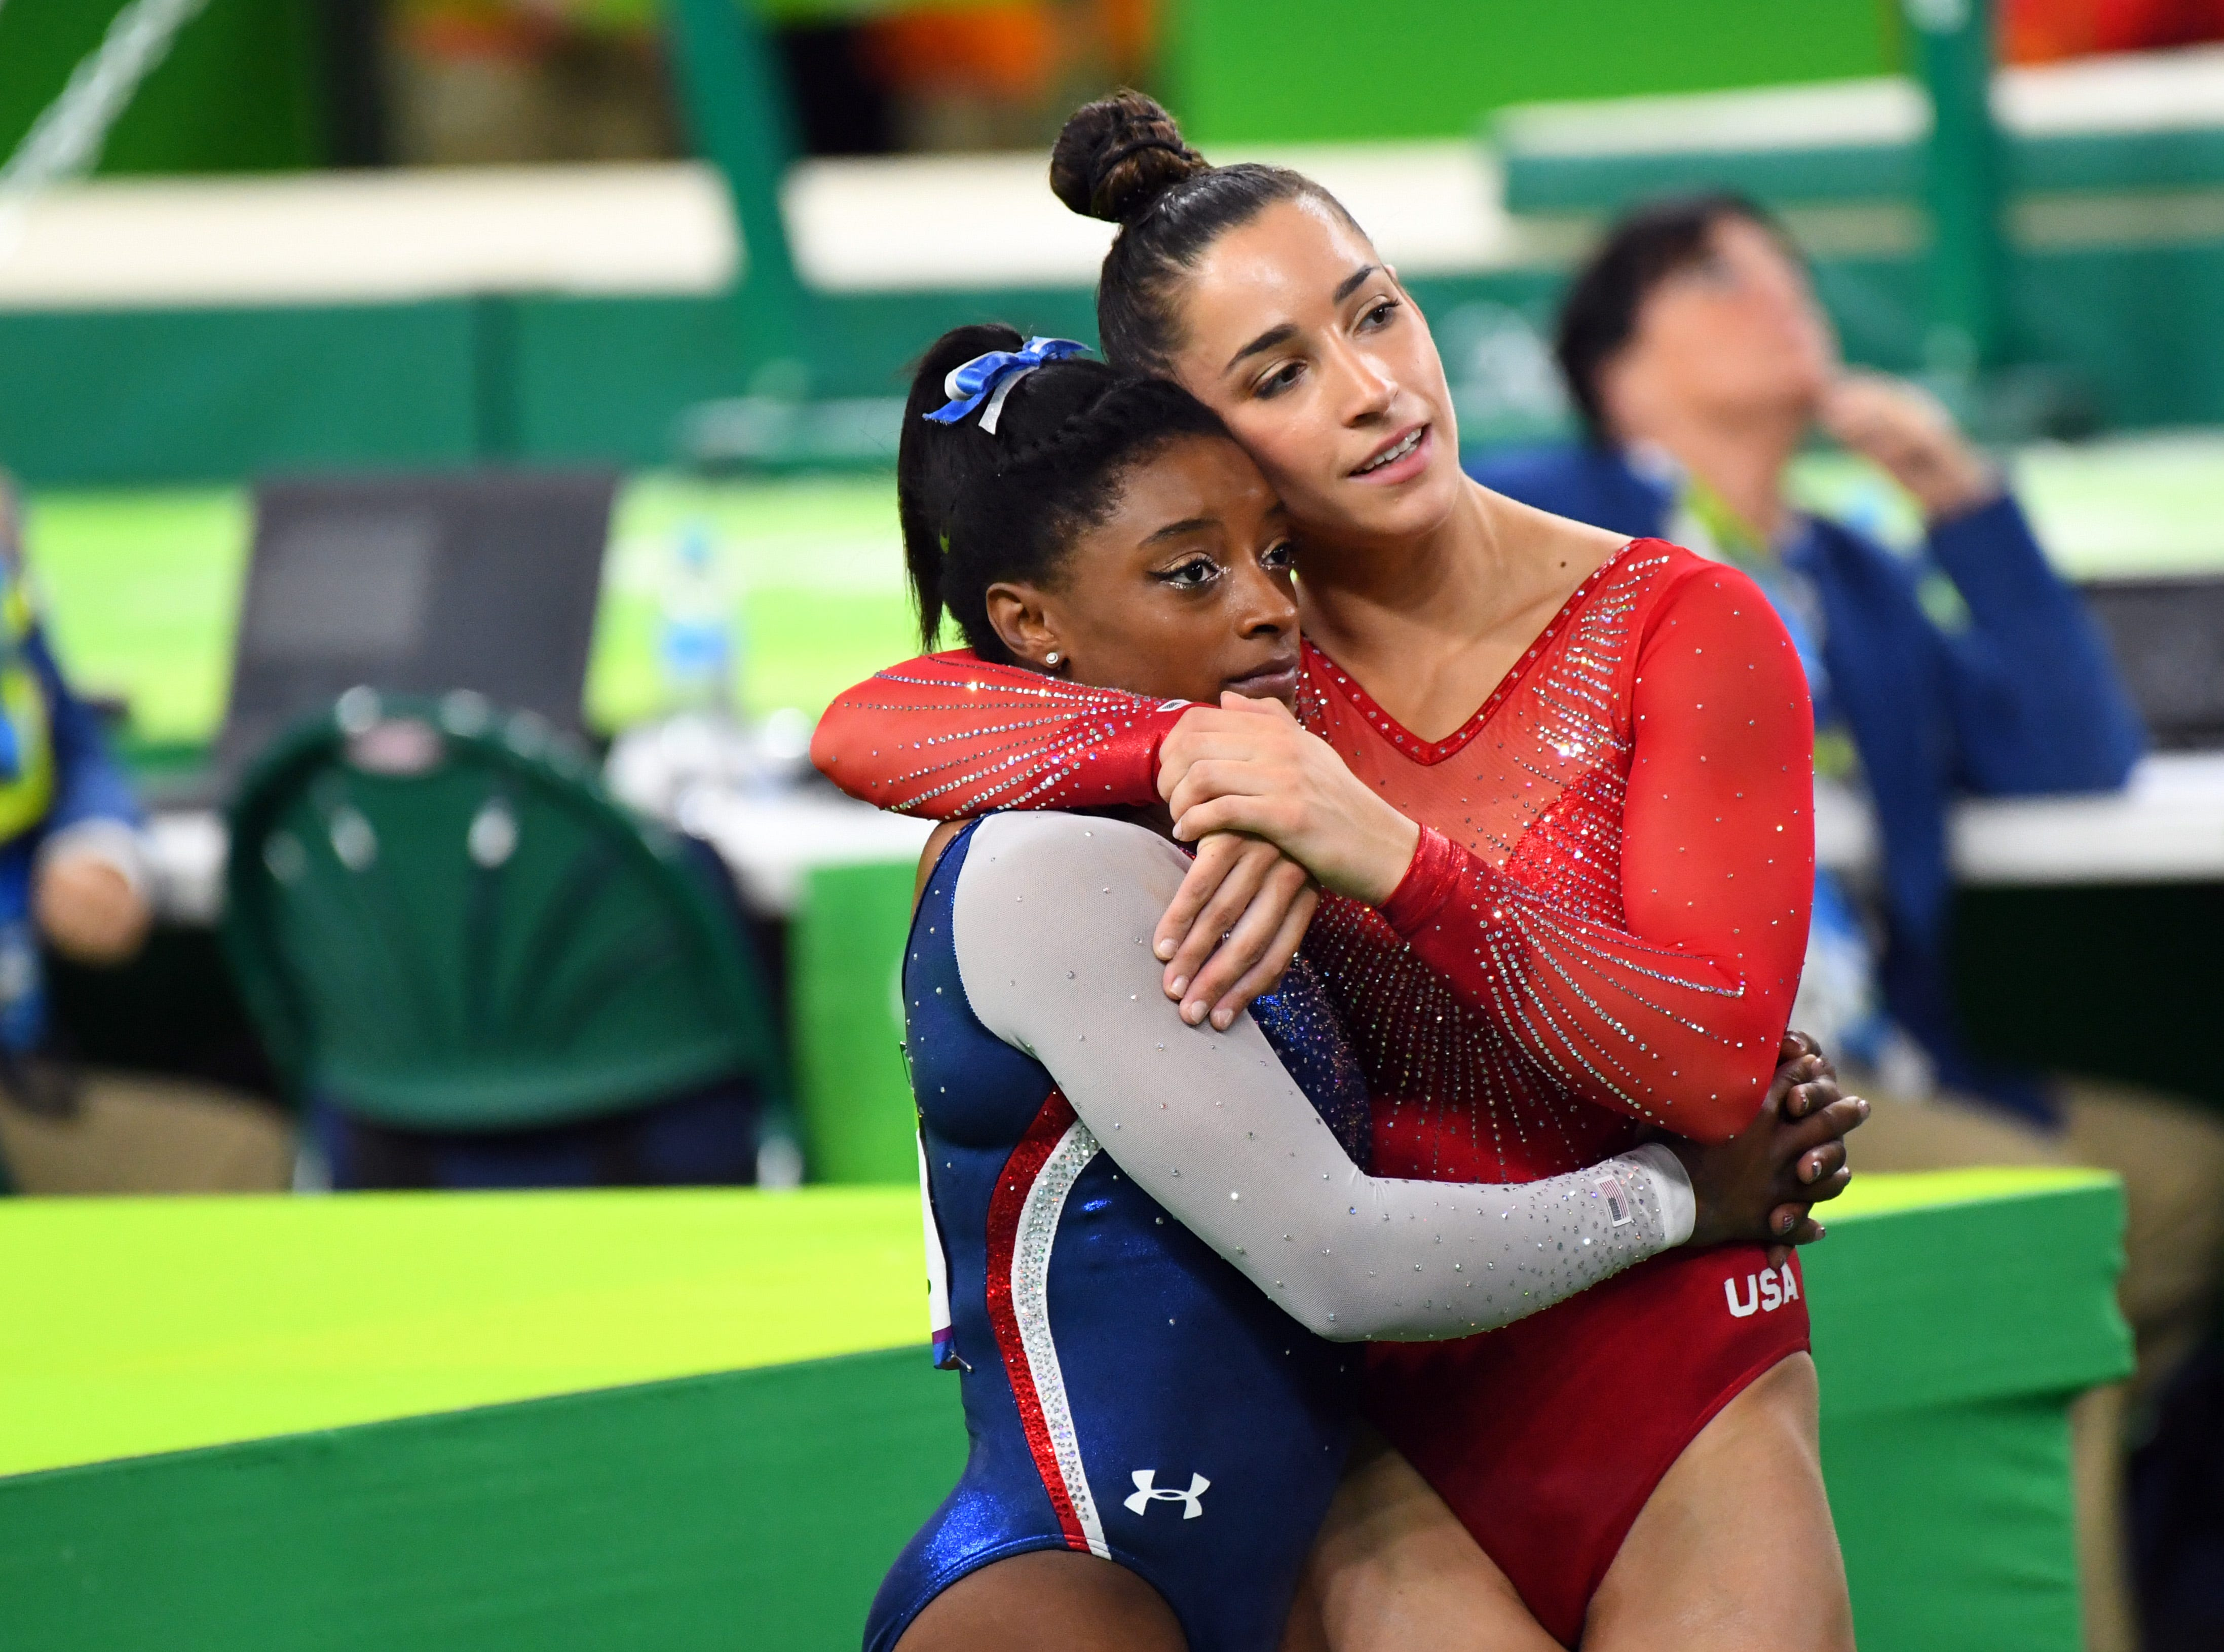 In 2016, Simone Biles won Olympic gold in all-around and Aly Raisman took the silver.